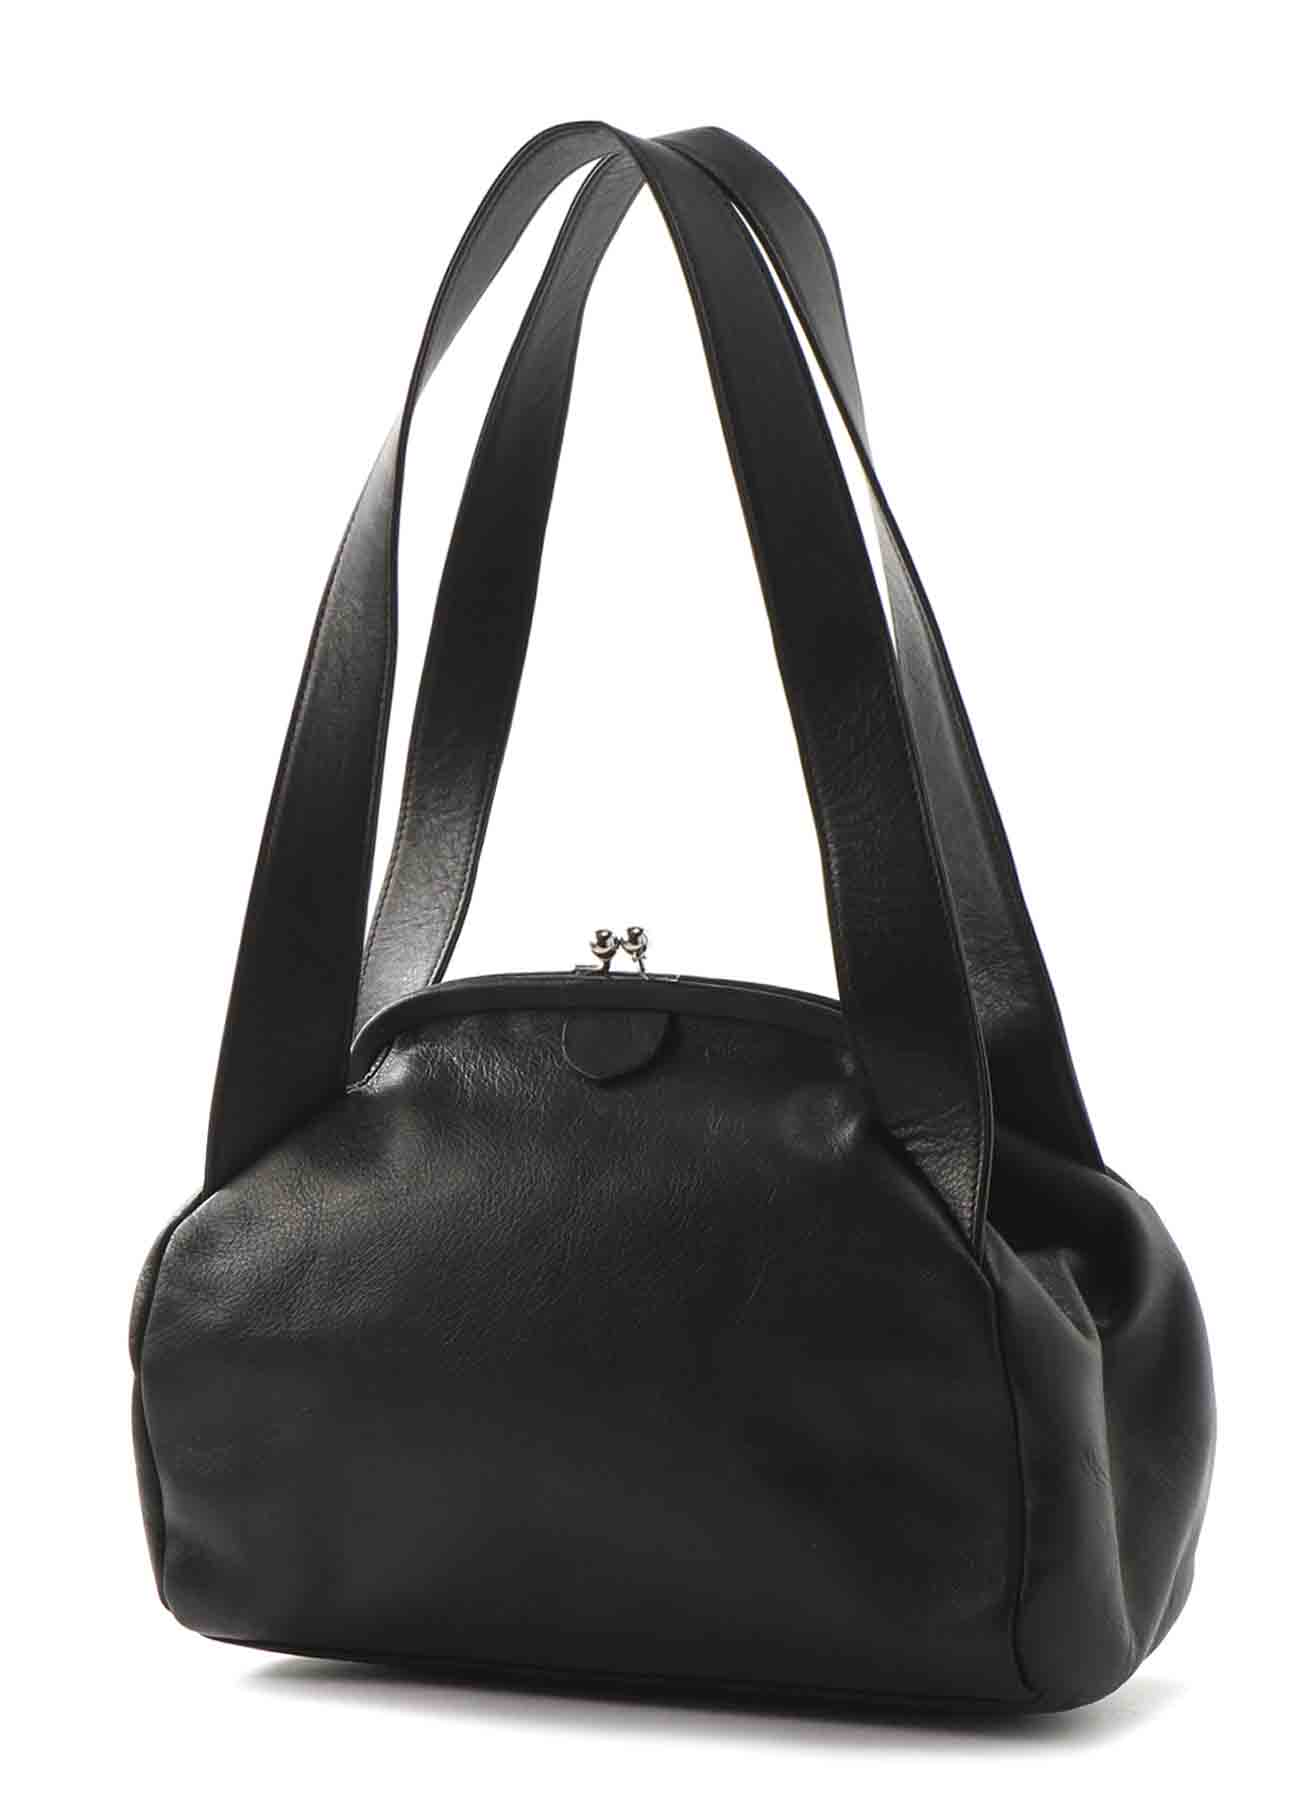 MEDIUM GLOSS LEATHER CLASP HANDBAG